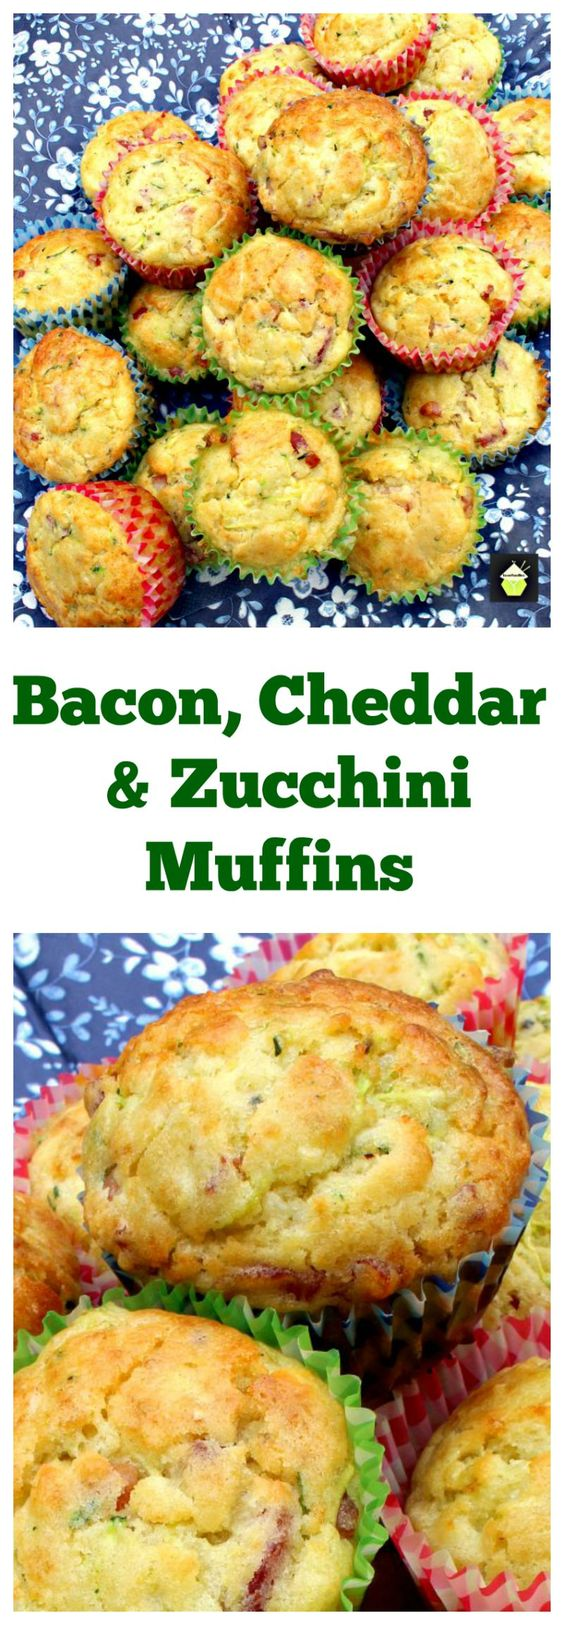 Zucchini muffins, Bacon and Bisquick on Pinterest